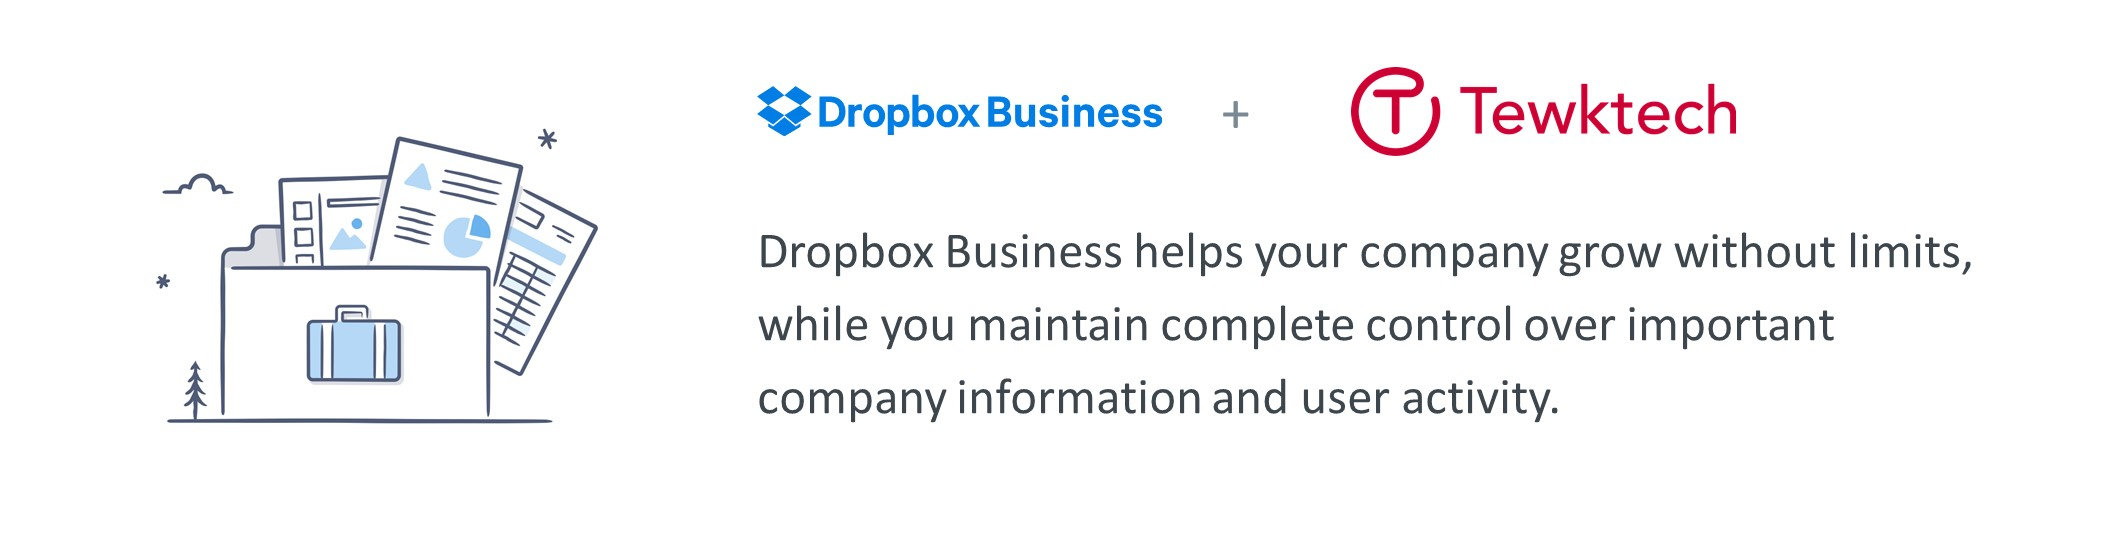 Dropbox Business from Tewktech Ltd